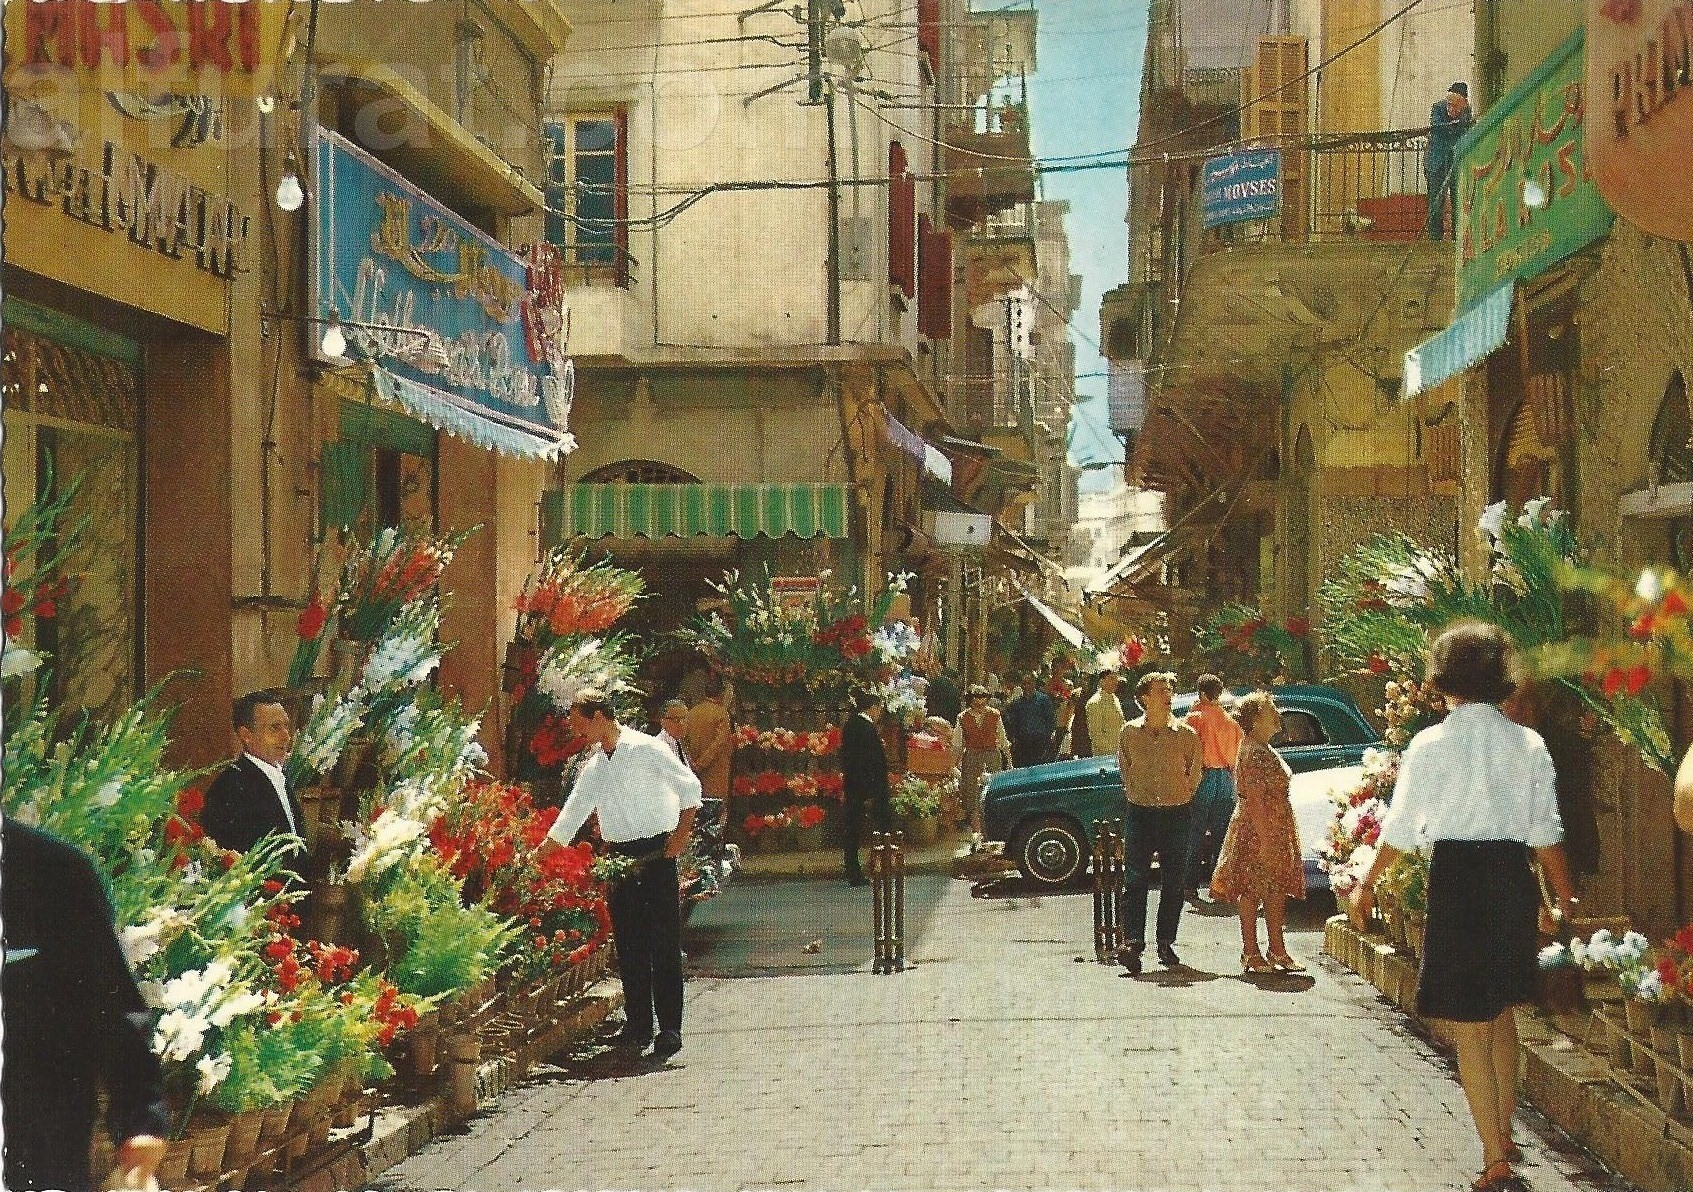 Beirut -  Flawers Market at Bab-Edriss  987  - 221 بيروت